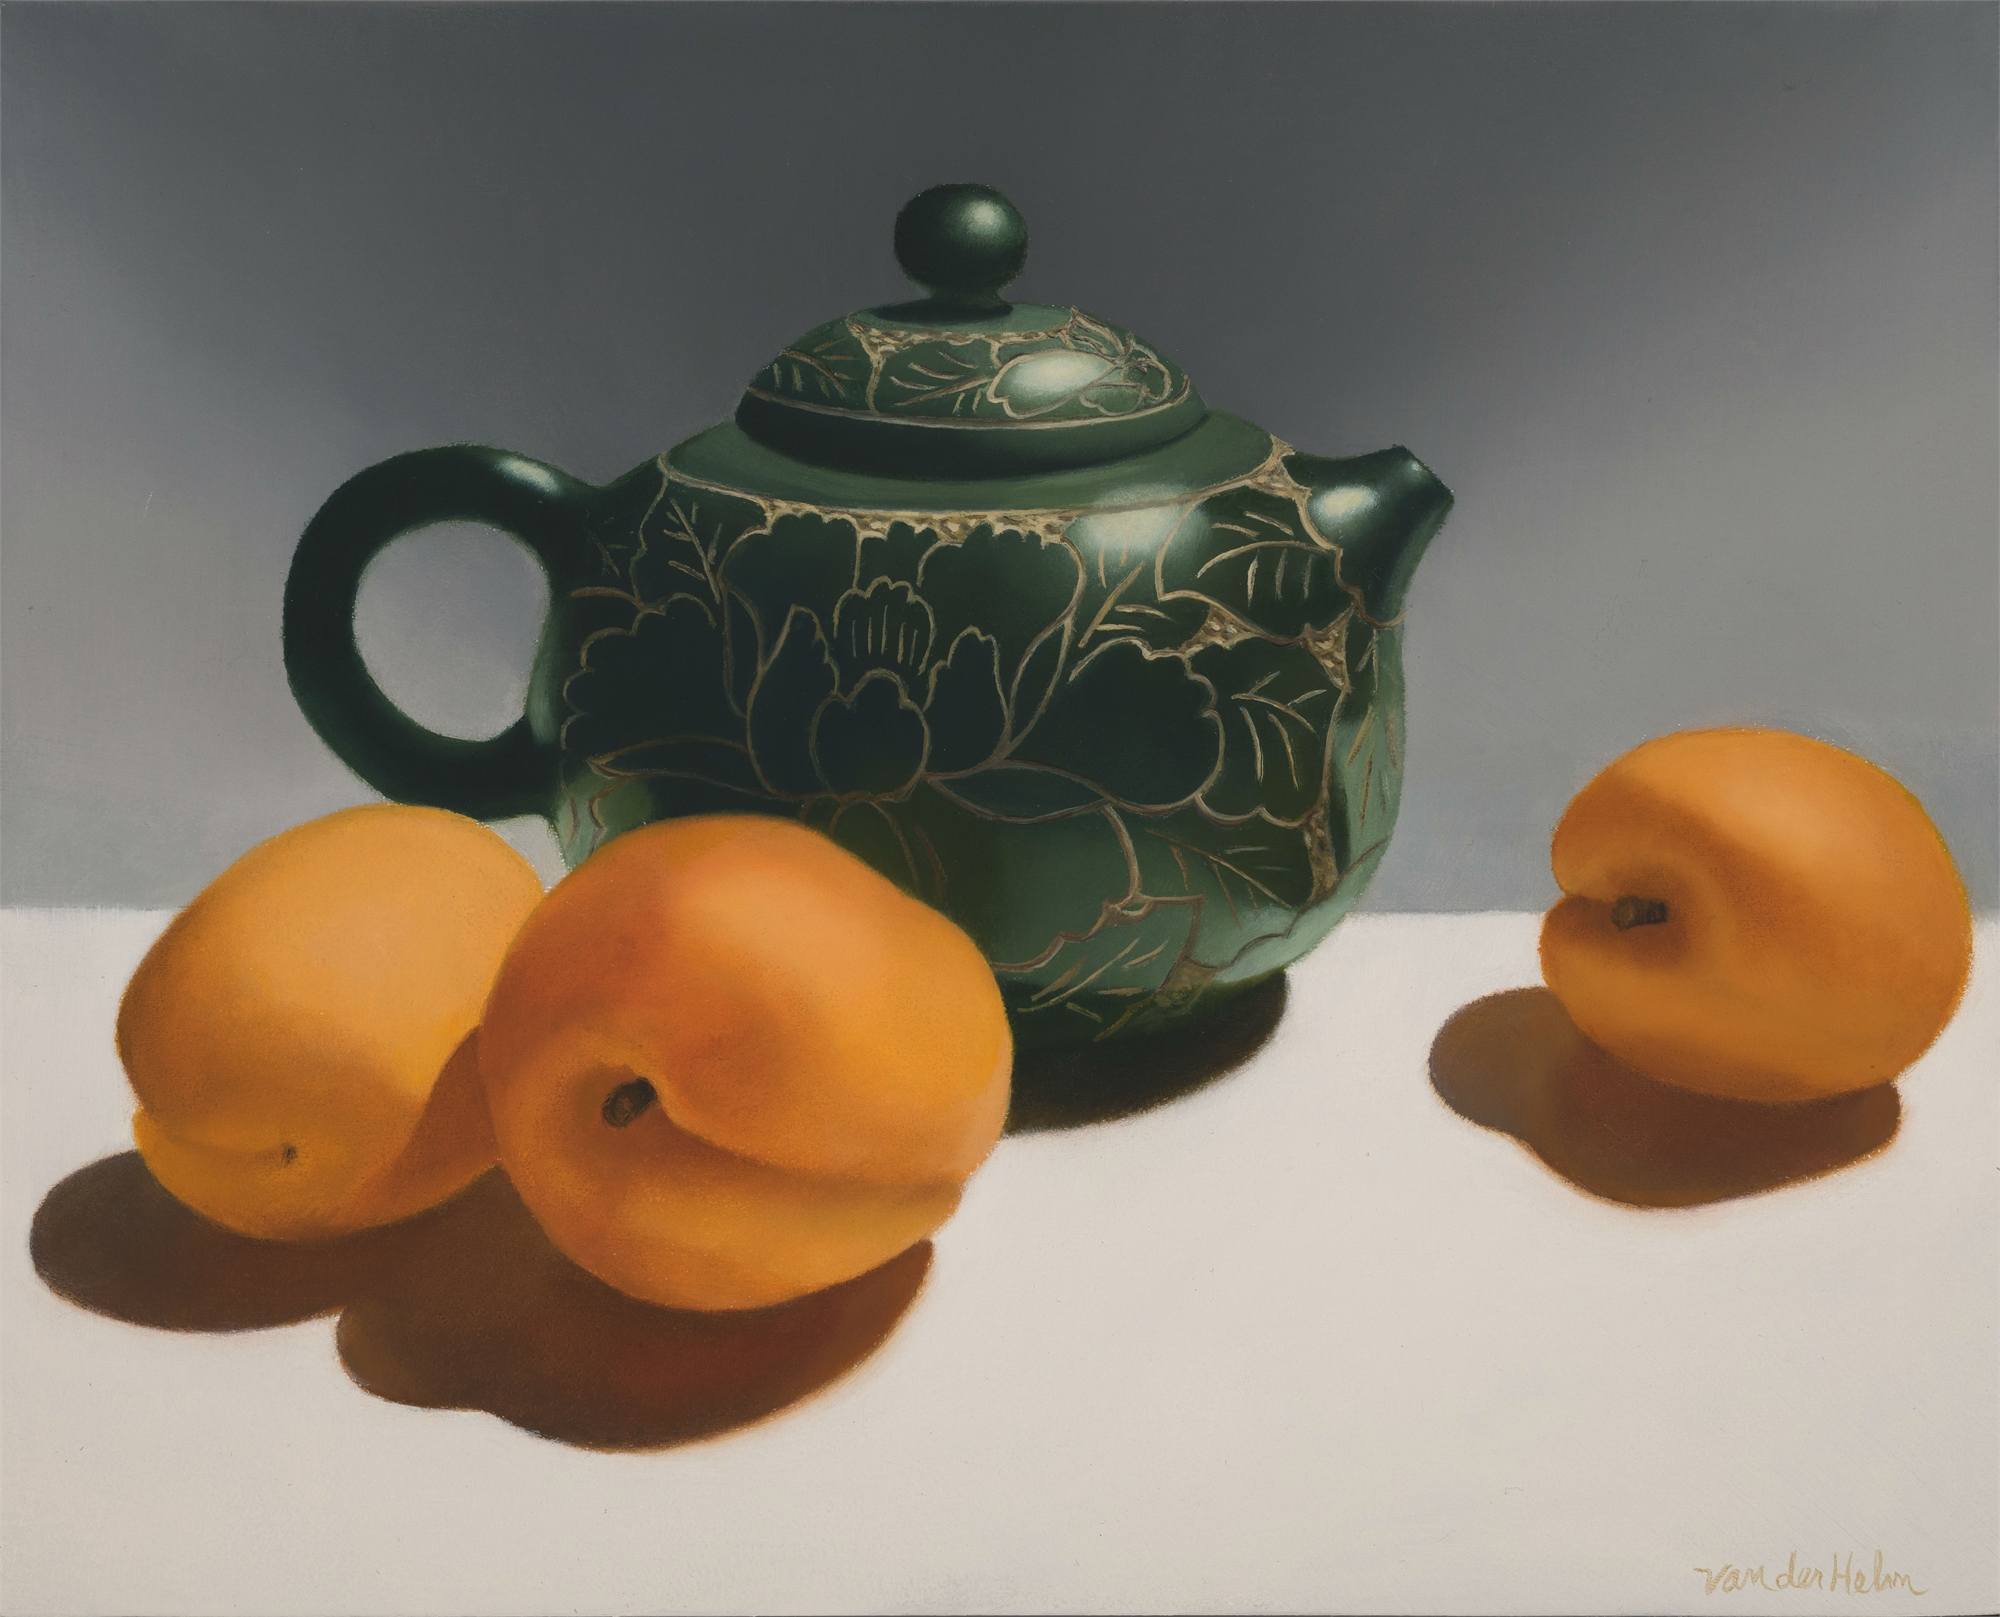 Teapot with Apricots by Sarah van der Helm